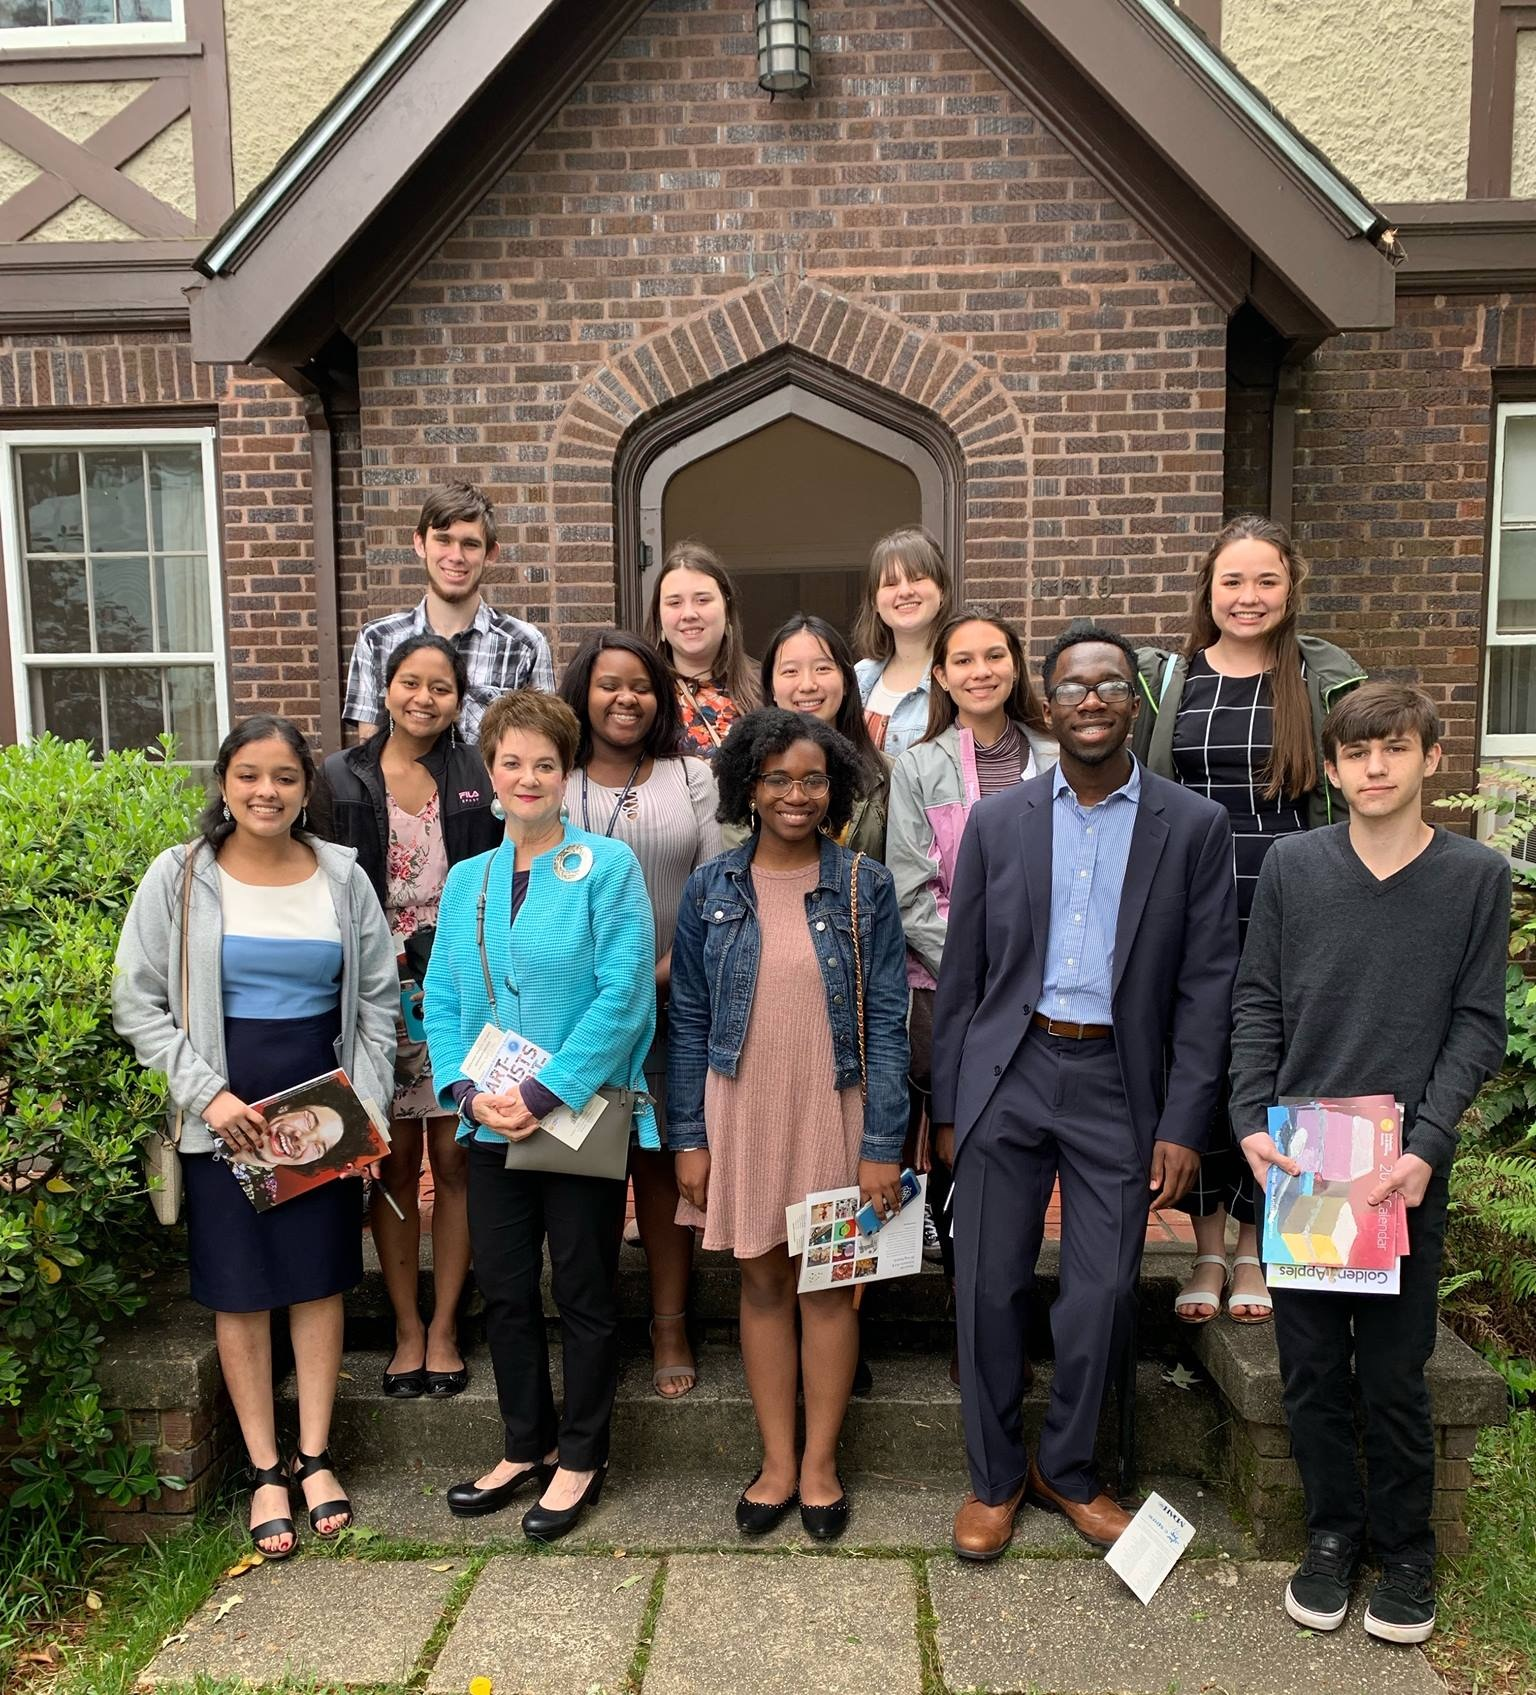 Pictured are Landon Alexander, Ryley Fallon, Victoria Miller, Likhitha Polepalli, Jessikah Morton, Victoria Gong, River Gordon, Madison Wypyski, Indu Nandula, Mrs.Emma Richardson, Aja Ceesay, Morgan Emokpae, and Christian Couvillion. Not pictured: Chylar Gibson and Sarah Perry.